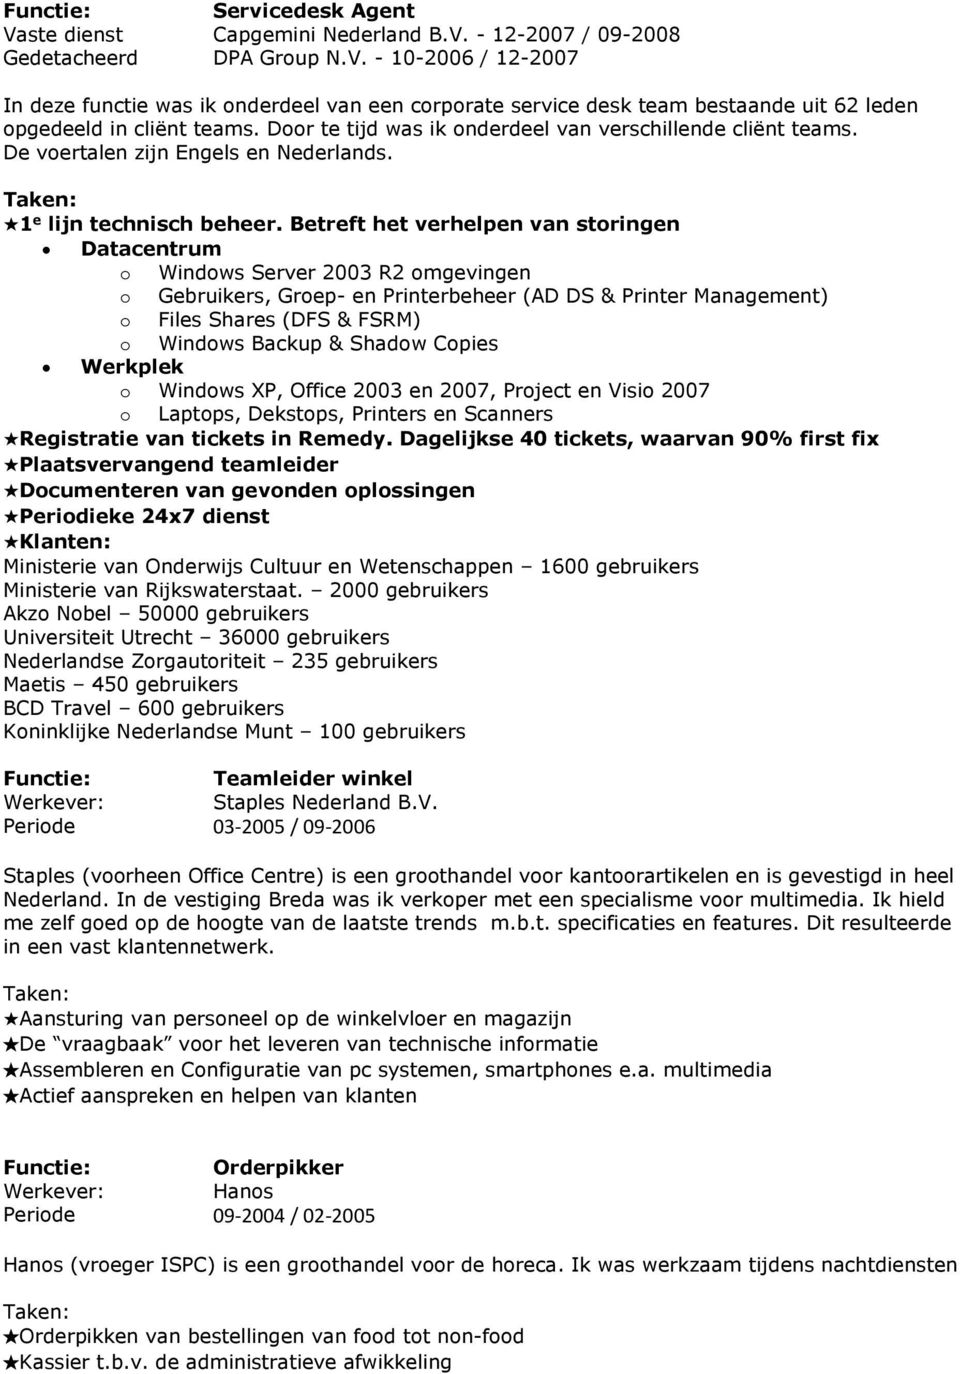 Betreft het verhelpen van storingen Datacentrum o Windows Server 2003 R2 omgevingen o Gebruikers, Groep- en Printerbeheer (AD DS & Printer Management) o Files Shares (DFS & FSRM) o Windows Backup &